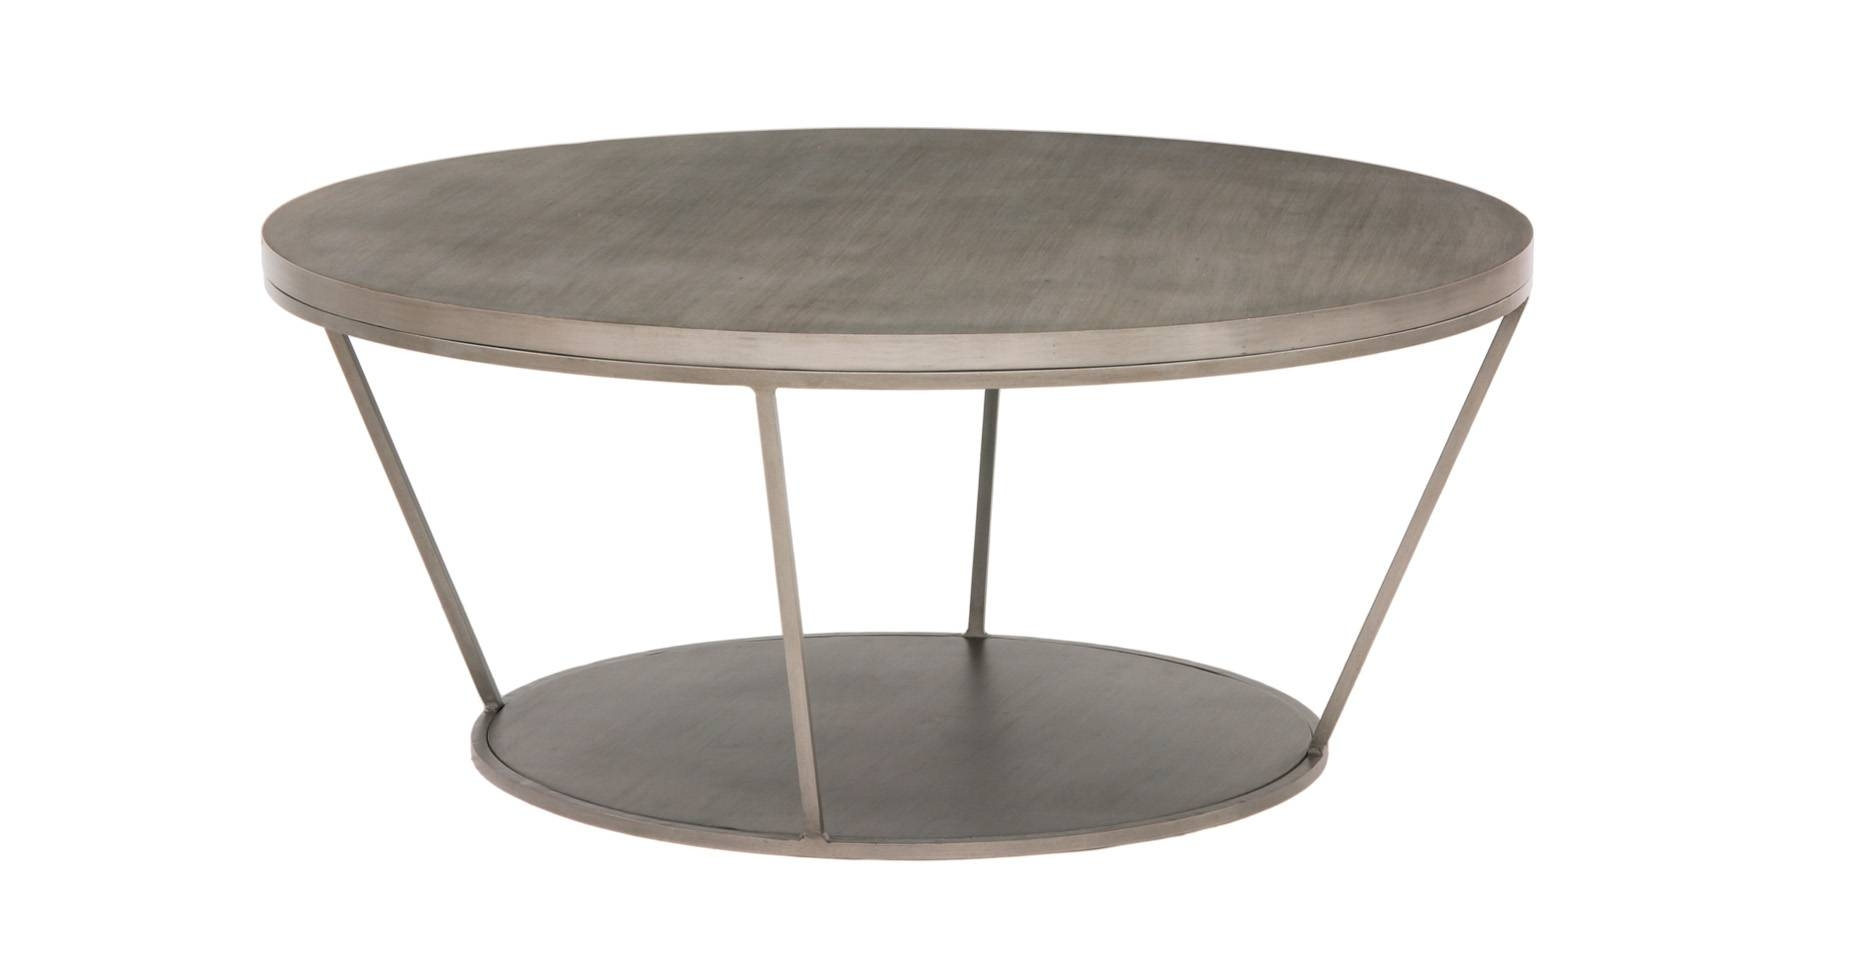 Round Coffee Table For Modern Interior Design | Newcoffeetable Throughout Small Round Coffee Tables (View 21 of 30)